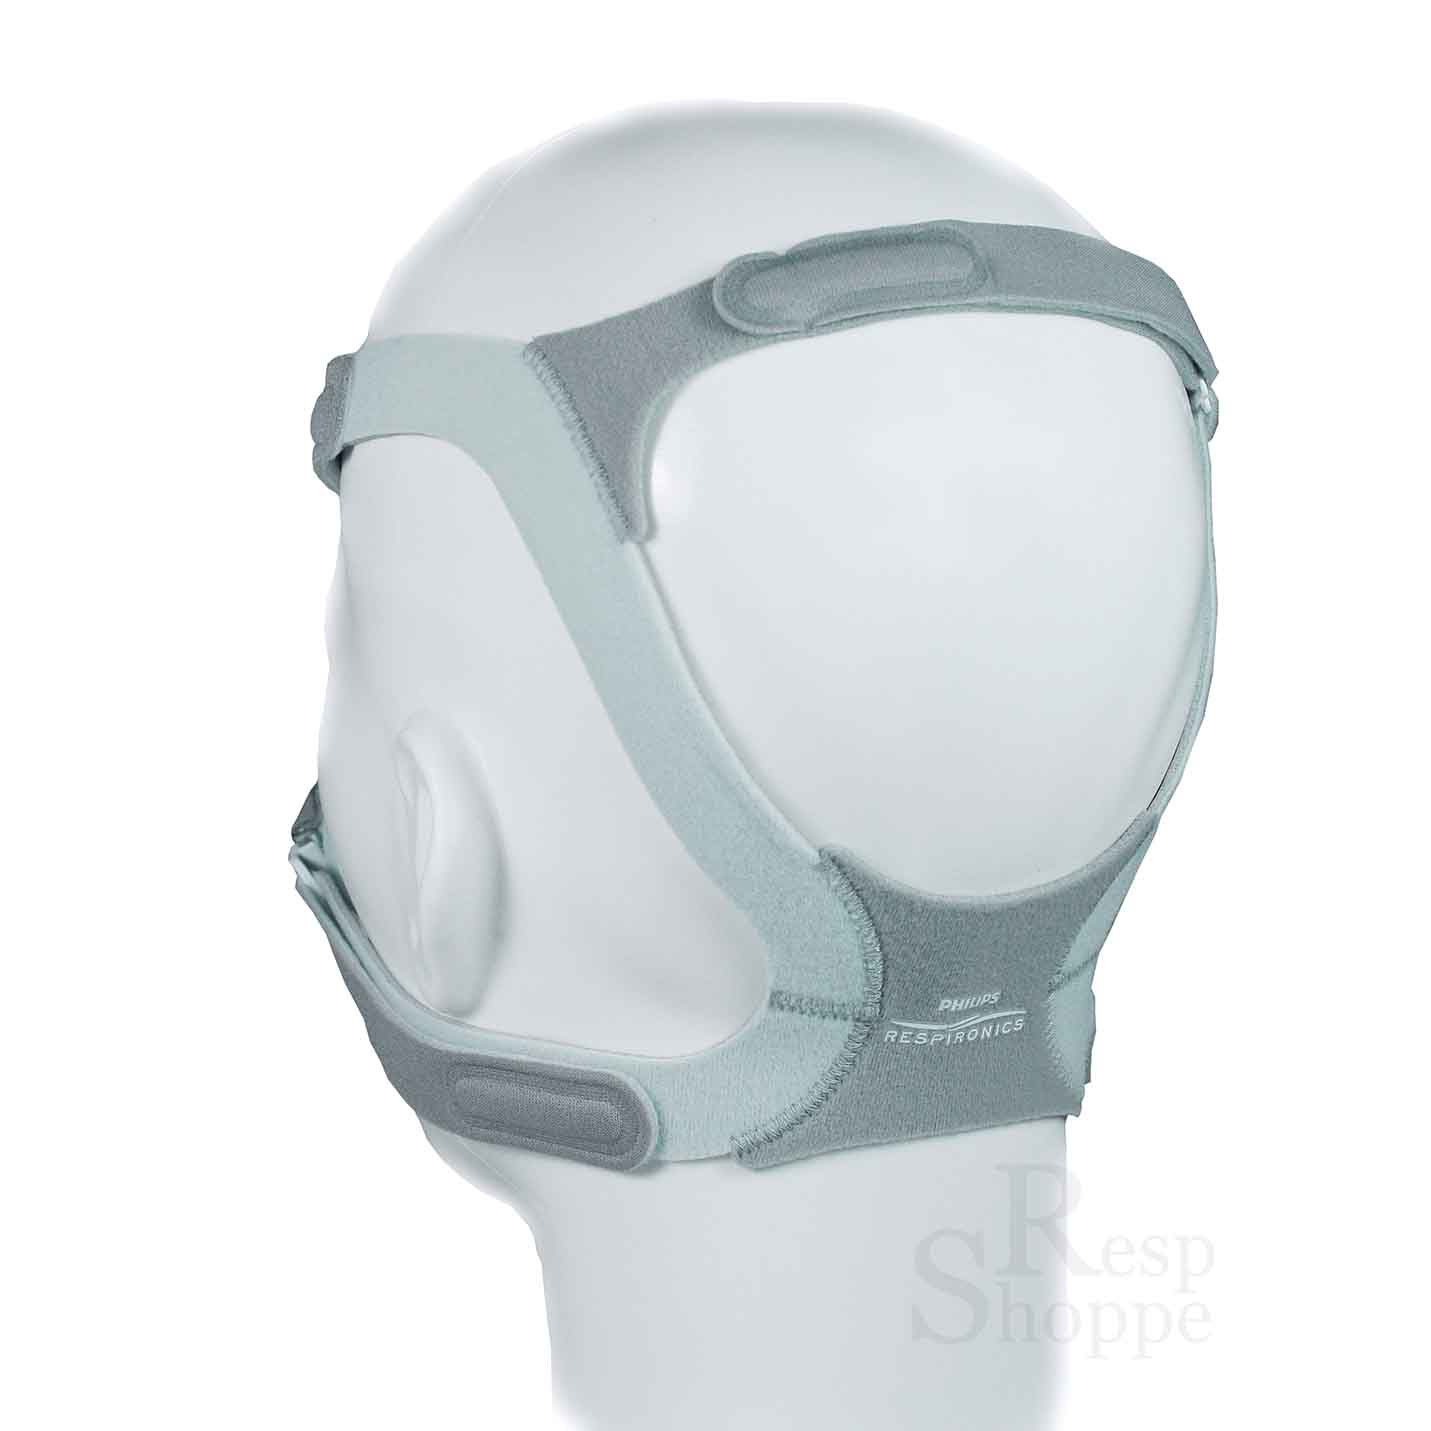 Respironics TrueBlue Gel Nasal Mask with Headgear #2F3E41